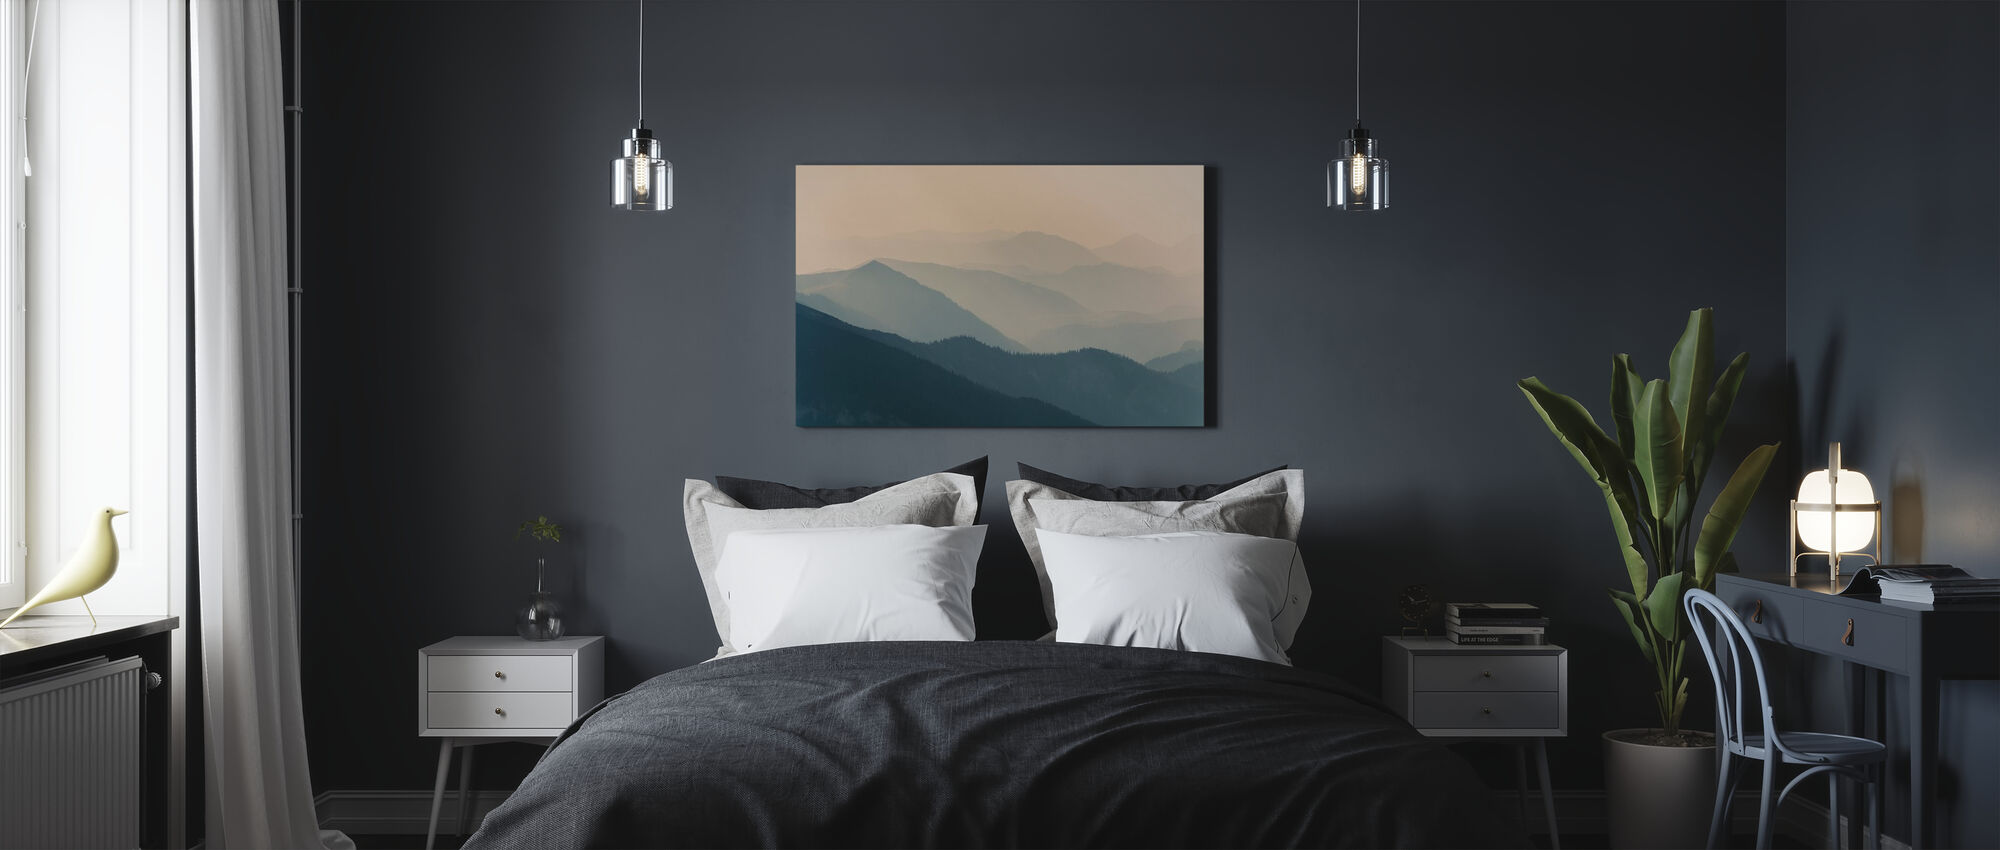 Pale Mountain Silhouettes - Canvas print - Bedroom